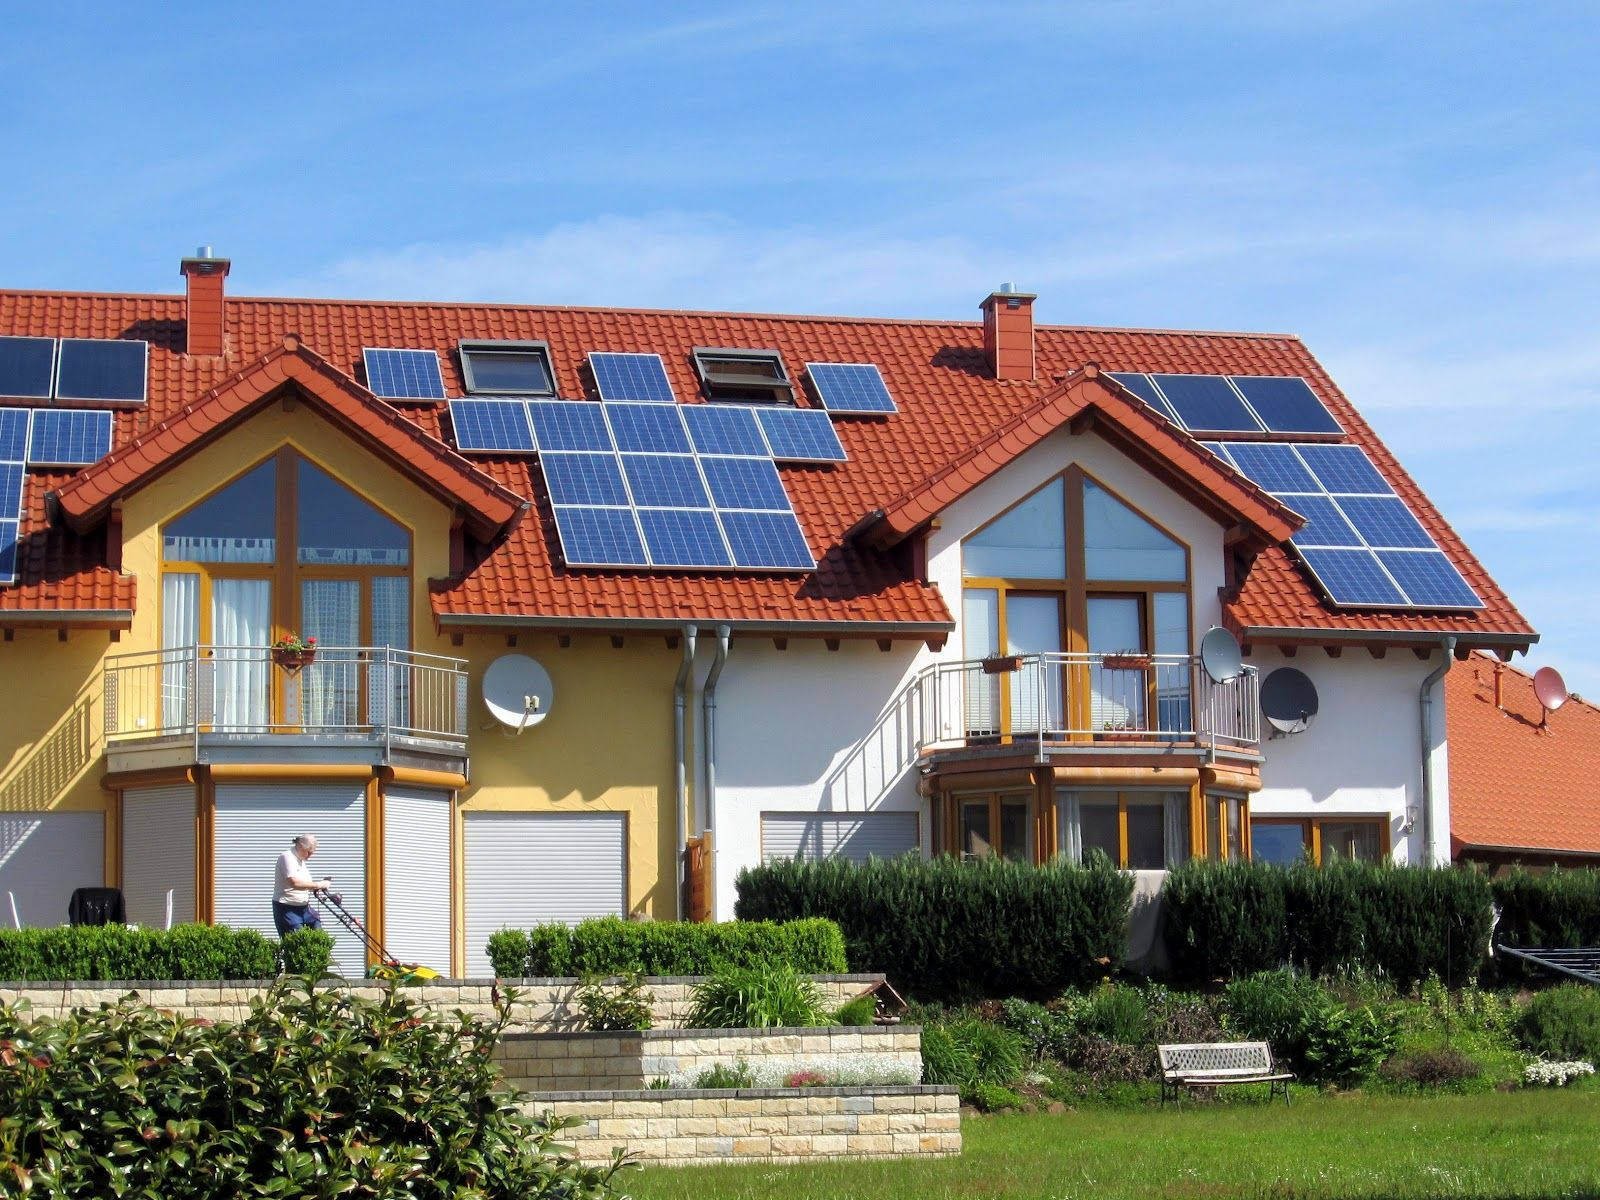 Best Solar Panels For House Solar Panels For House